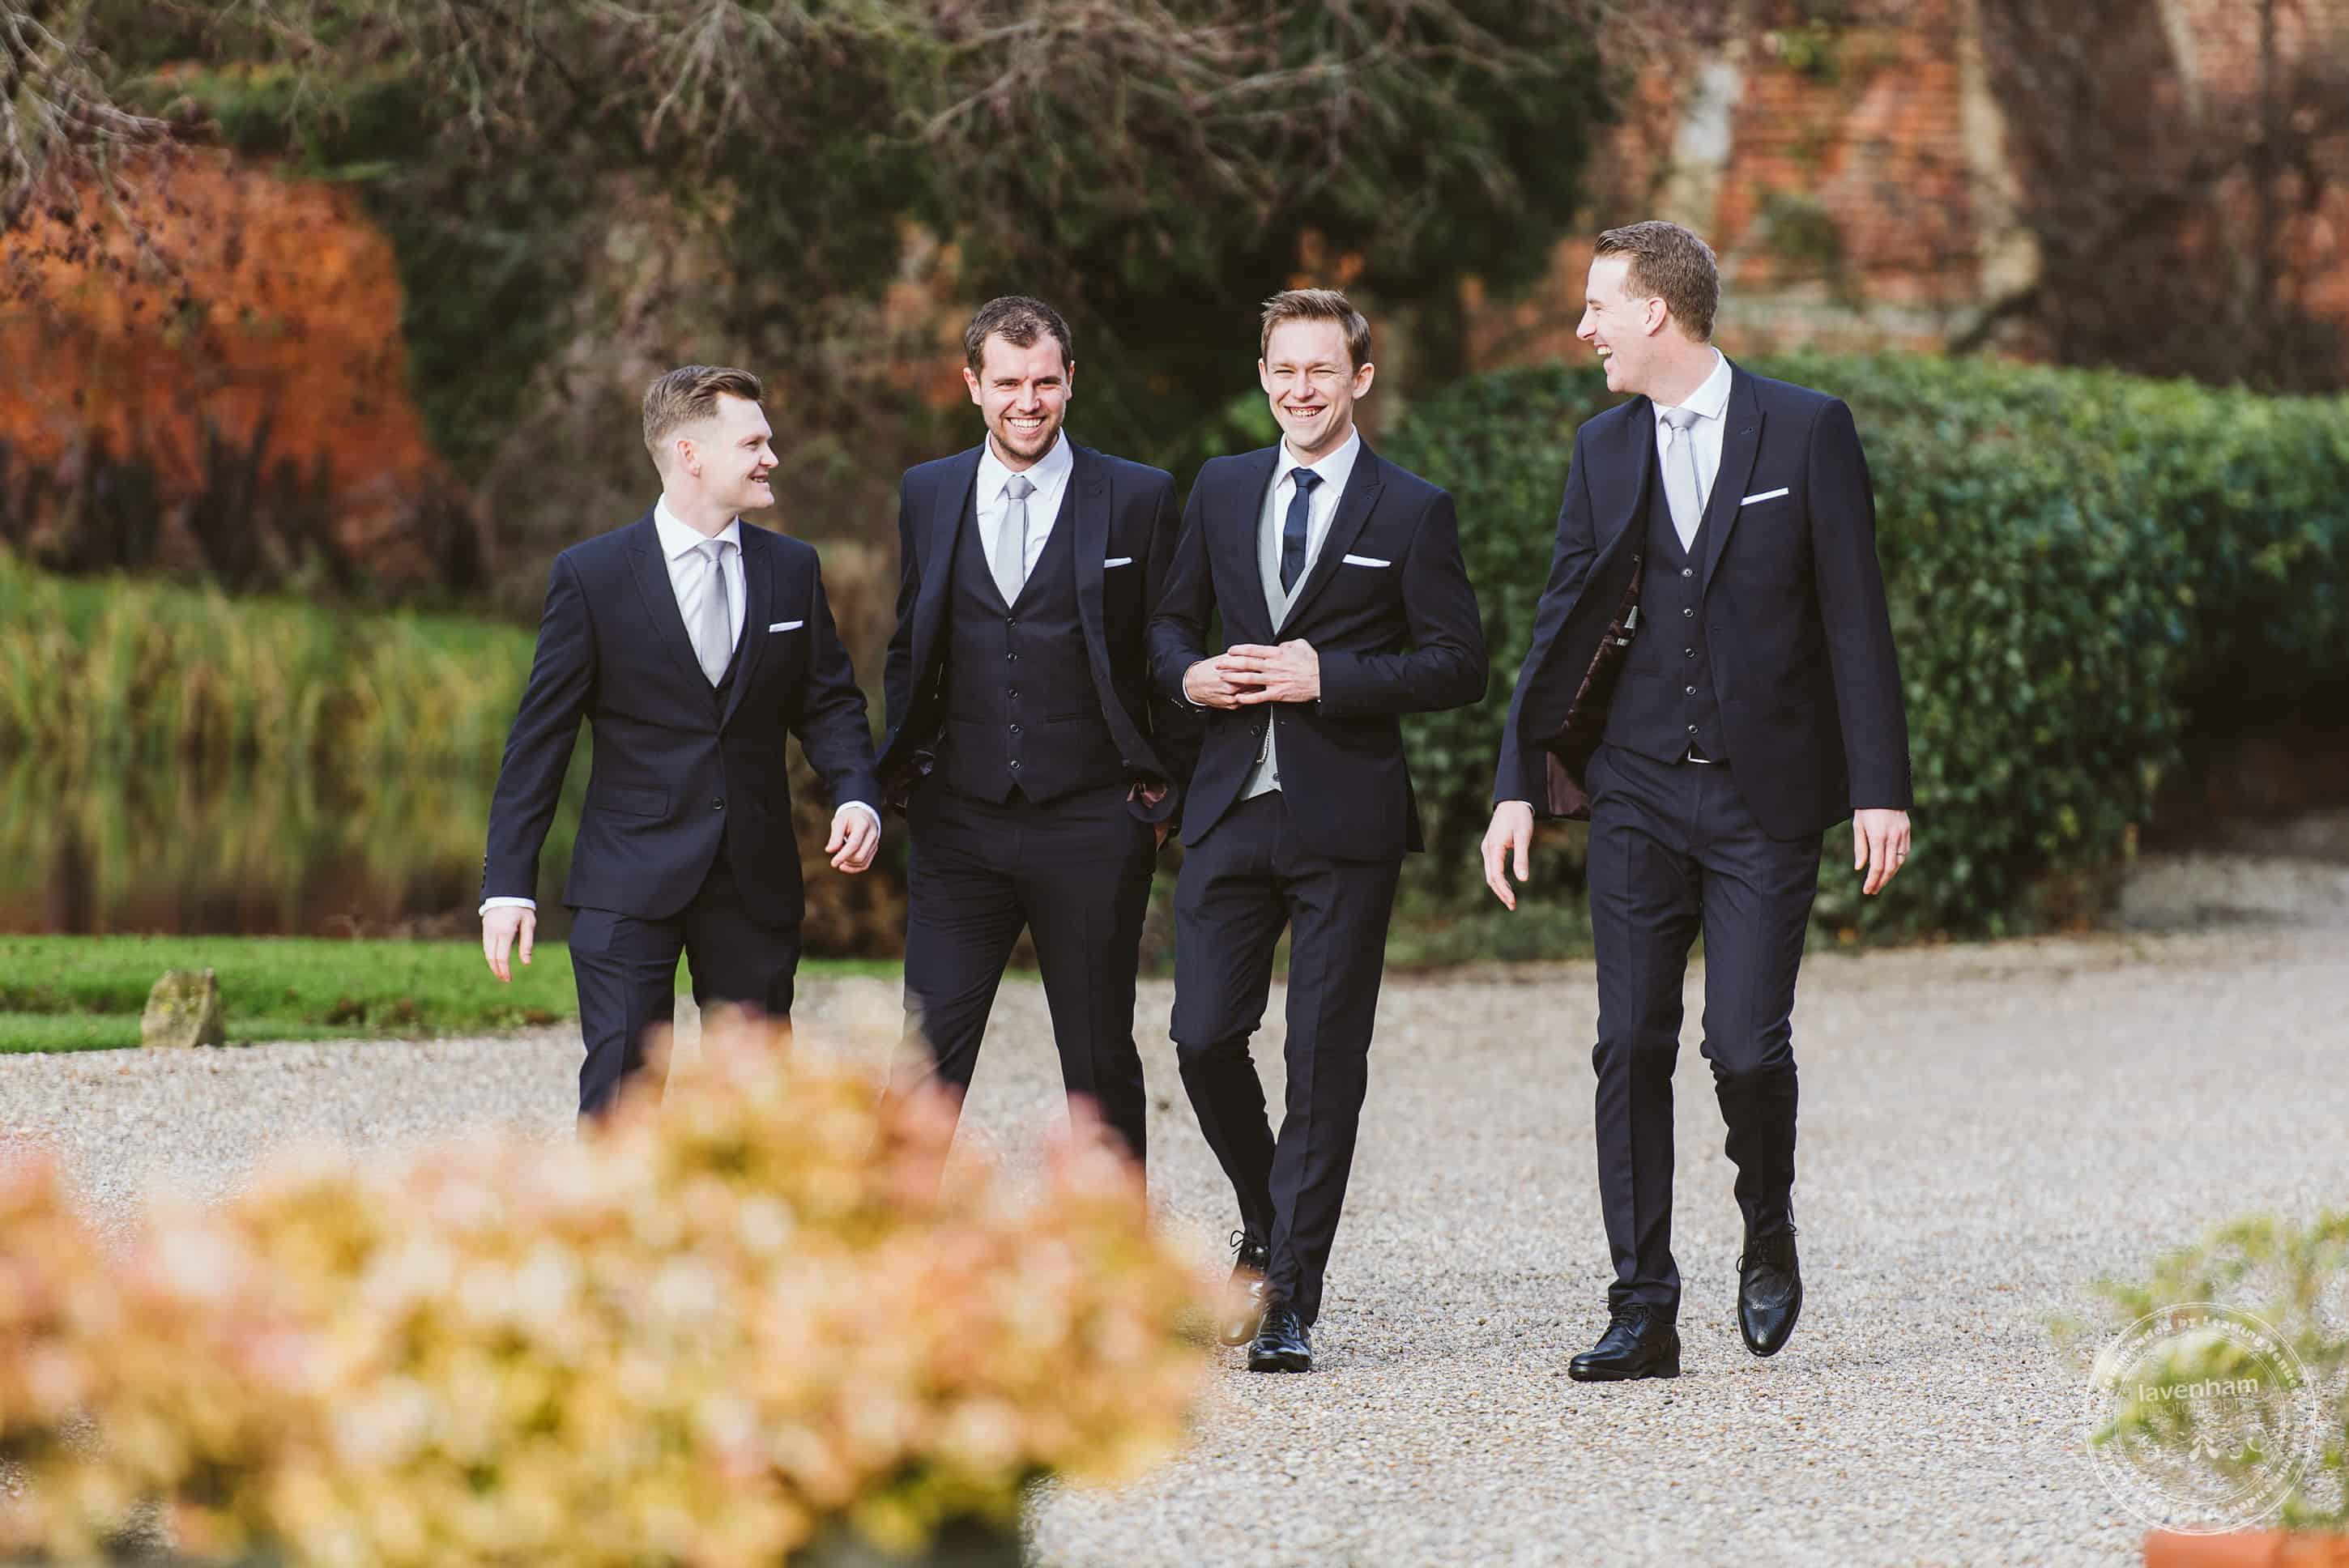 221219 Leez Priory Wedding Photoraphy 014